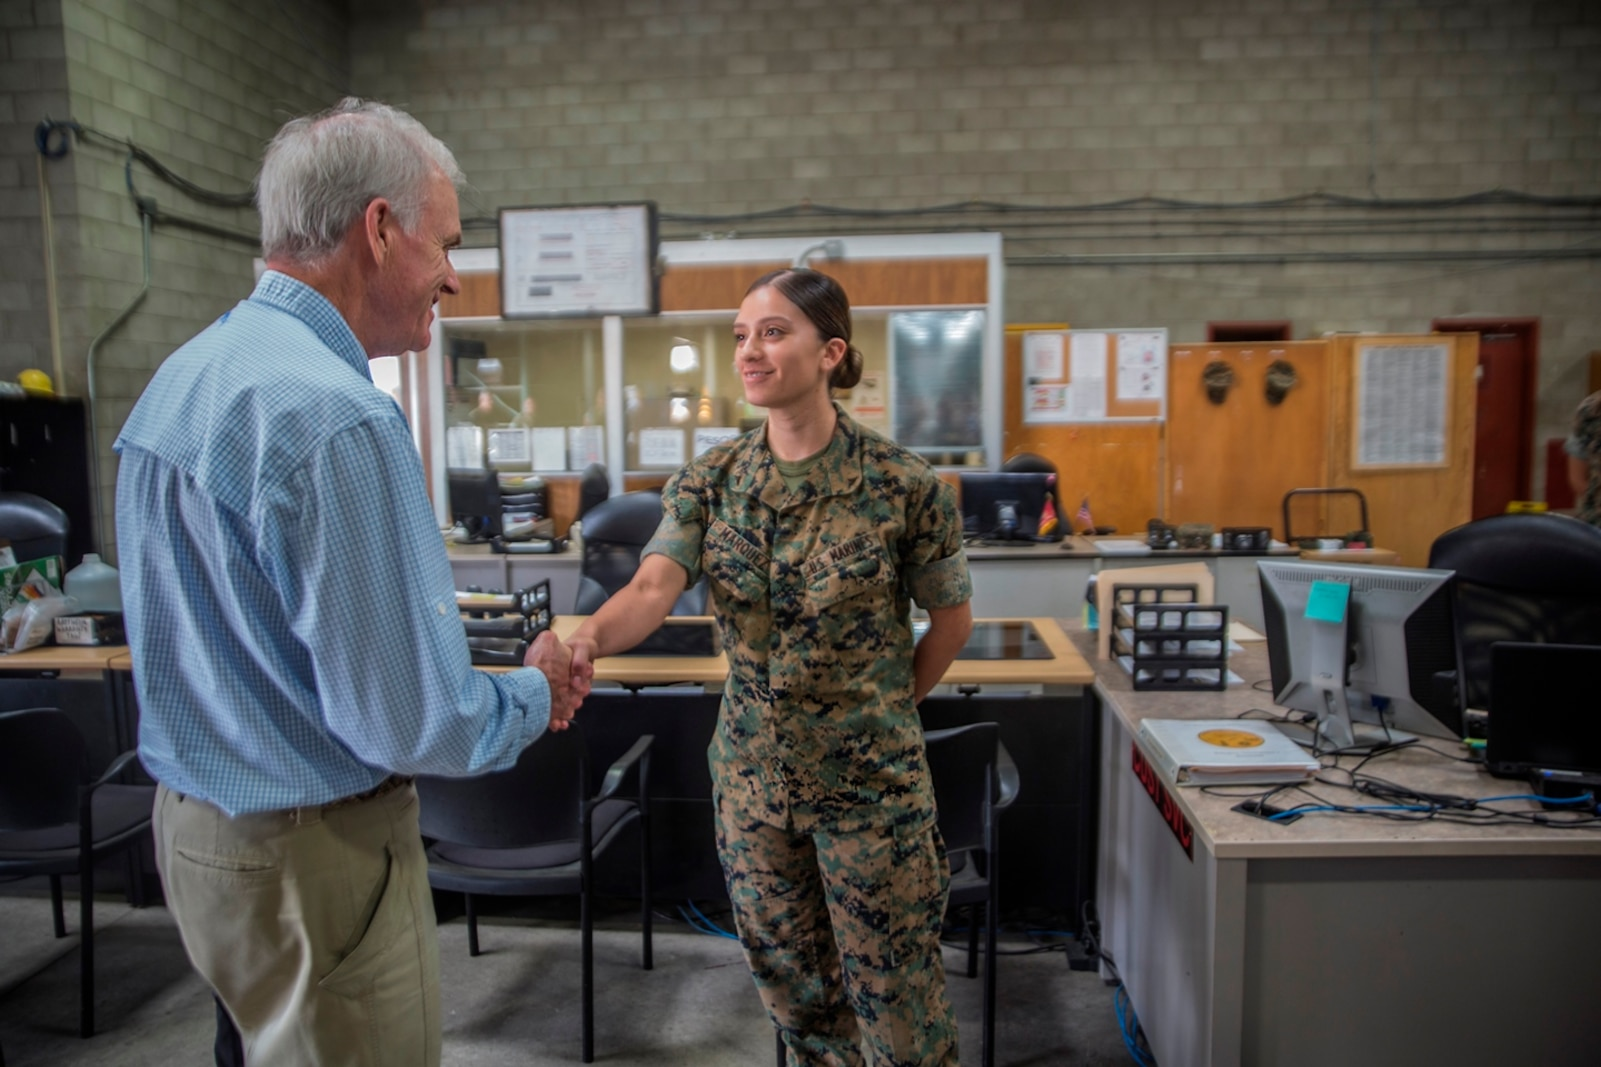 Richard Spencer, the Secretary of the Navy, greets Lance Cpl. Tatiana Marquez, a warehouse clerk with 1st Maintenance Battalion, Combat Logistics Regiment 15, 1st Marine Logistics Group, on Camp Pendleton, Calif., August 30, 2017. Spencer toured 1st Maintenance Battalion and talked to Marines about their capabilities and accomplishments. (U.S. Marine Corps photo by Lance Cpl. Adam Dublinske)